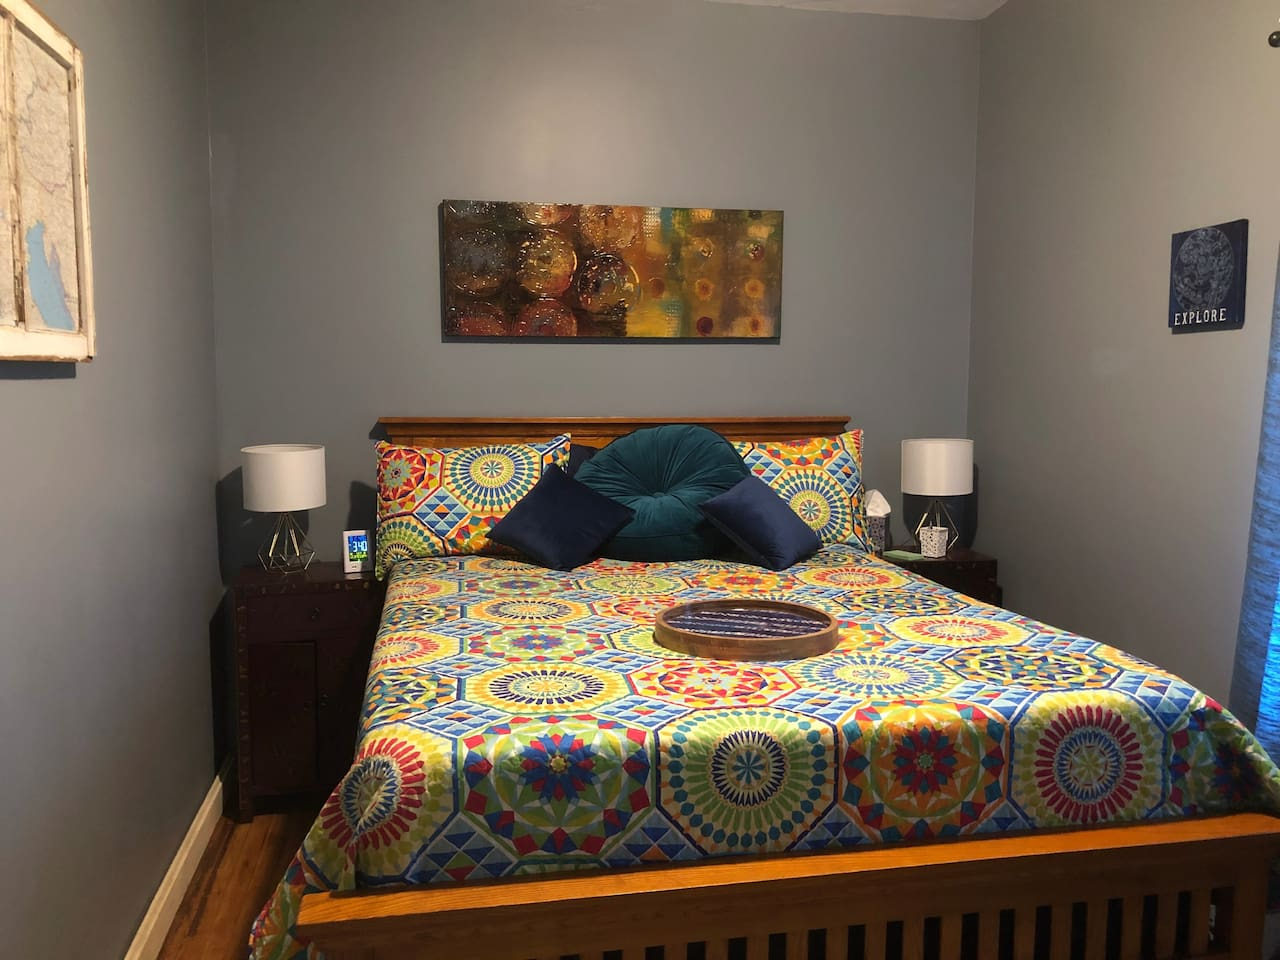 Bedroom 1 - side lamps and storage in side tables plus the alarm clock has a USB port to charge your devices.